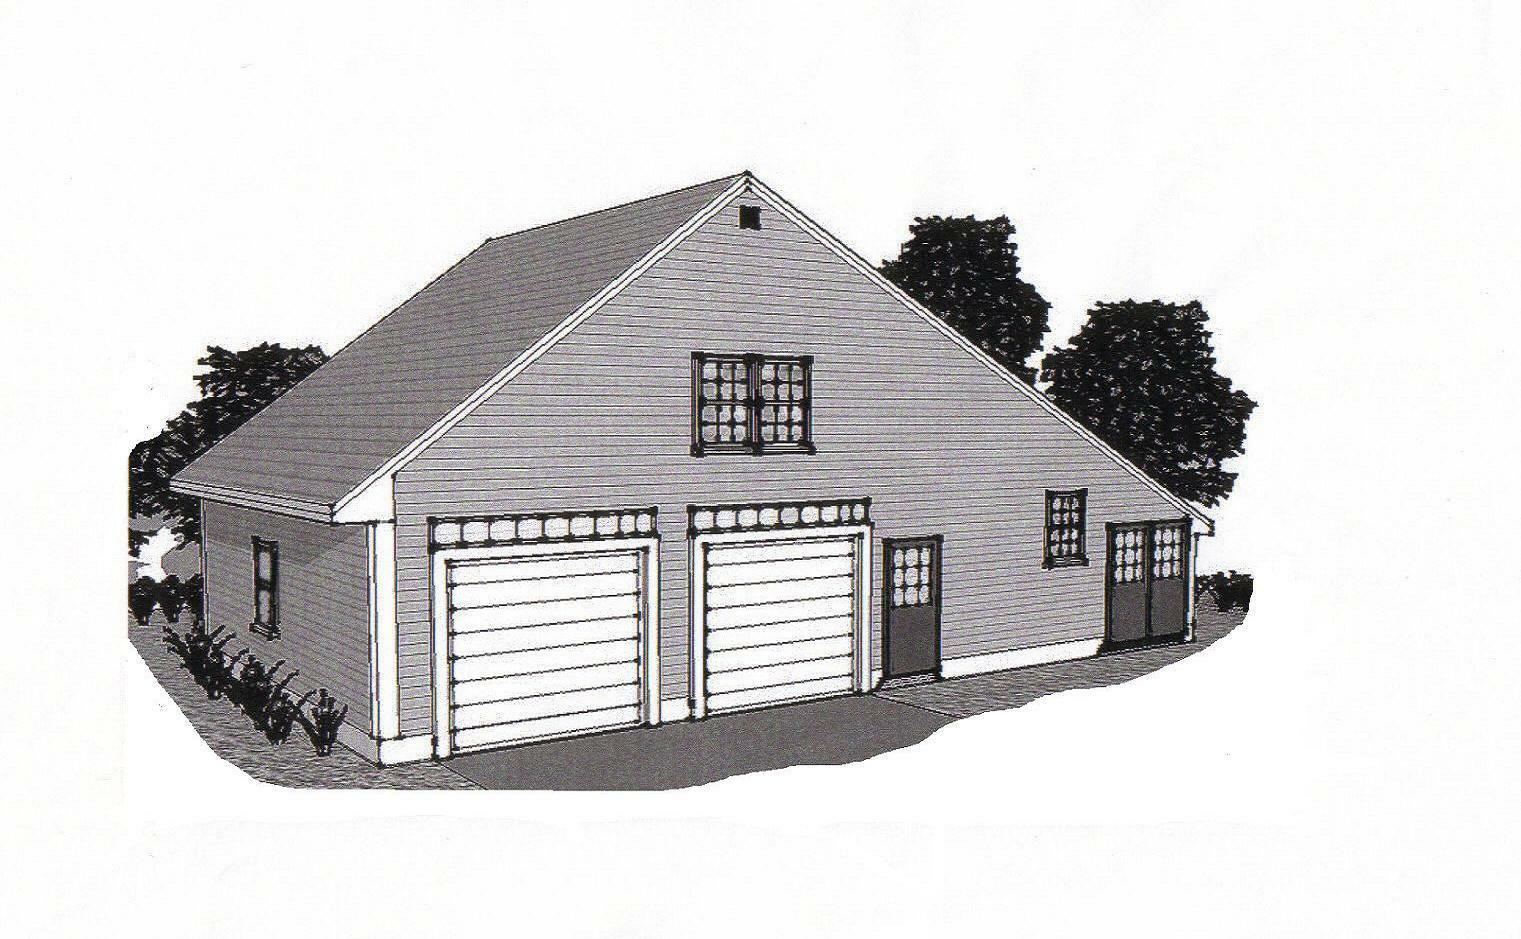 38x24 2 car garage building blueprint plans w work shop for Garage and storage building plans